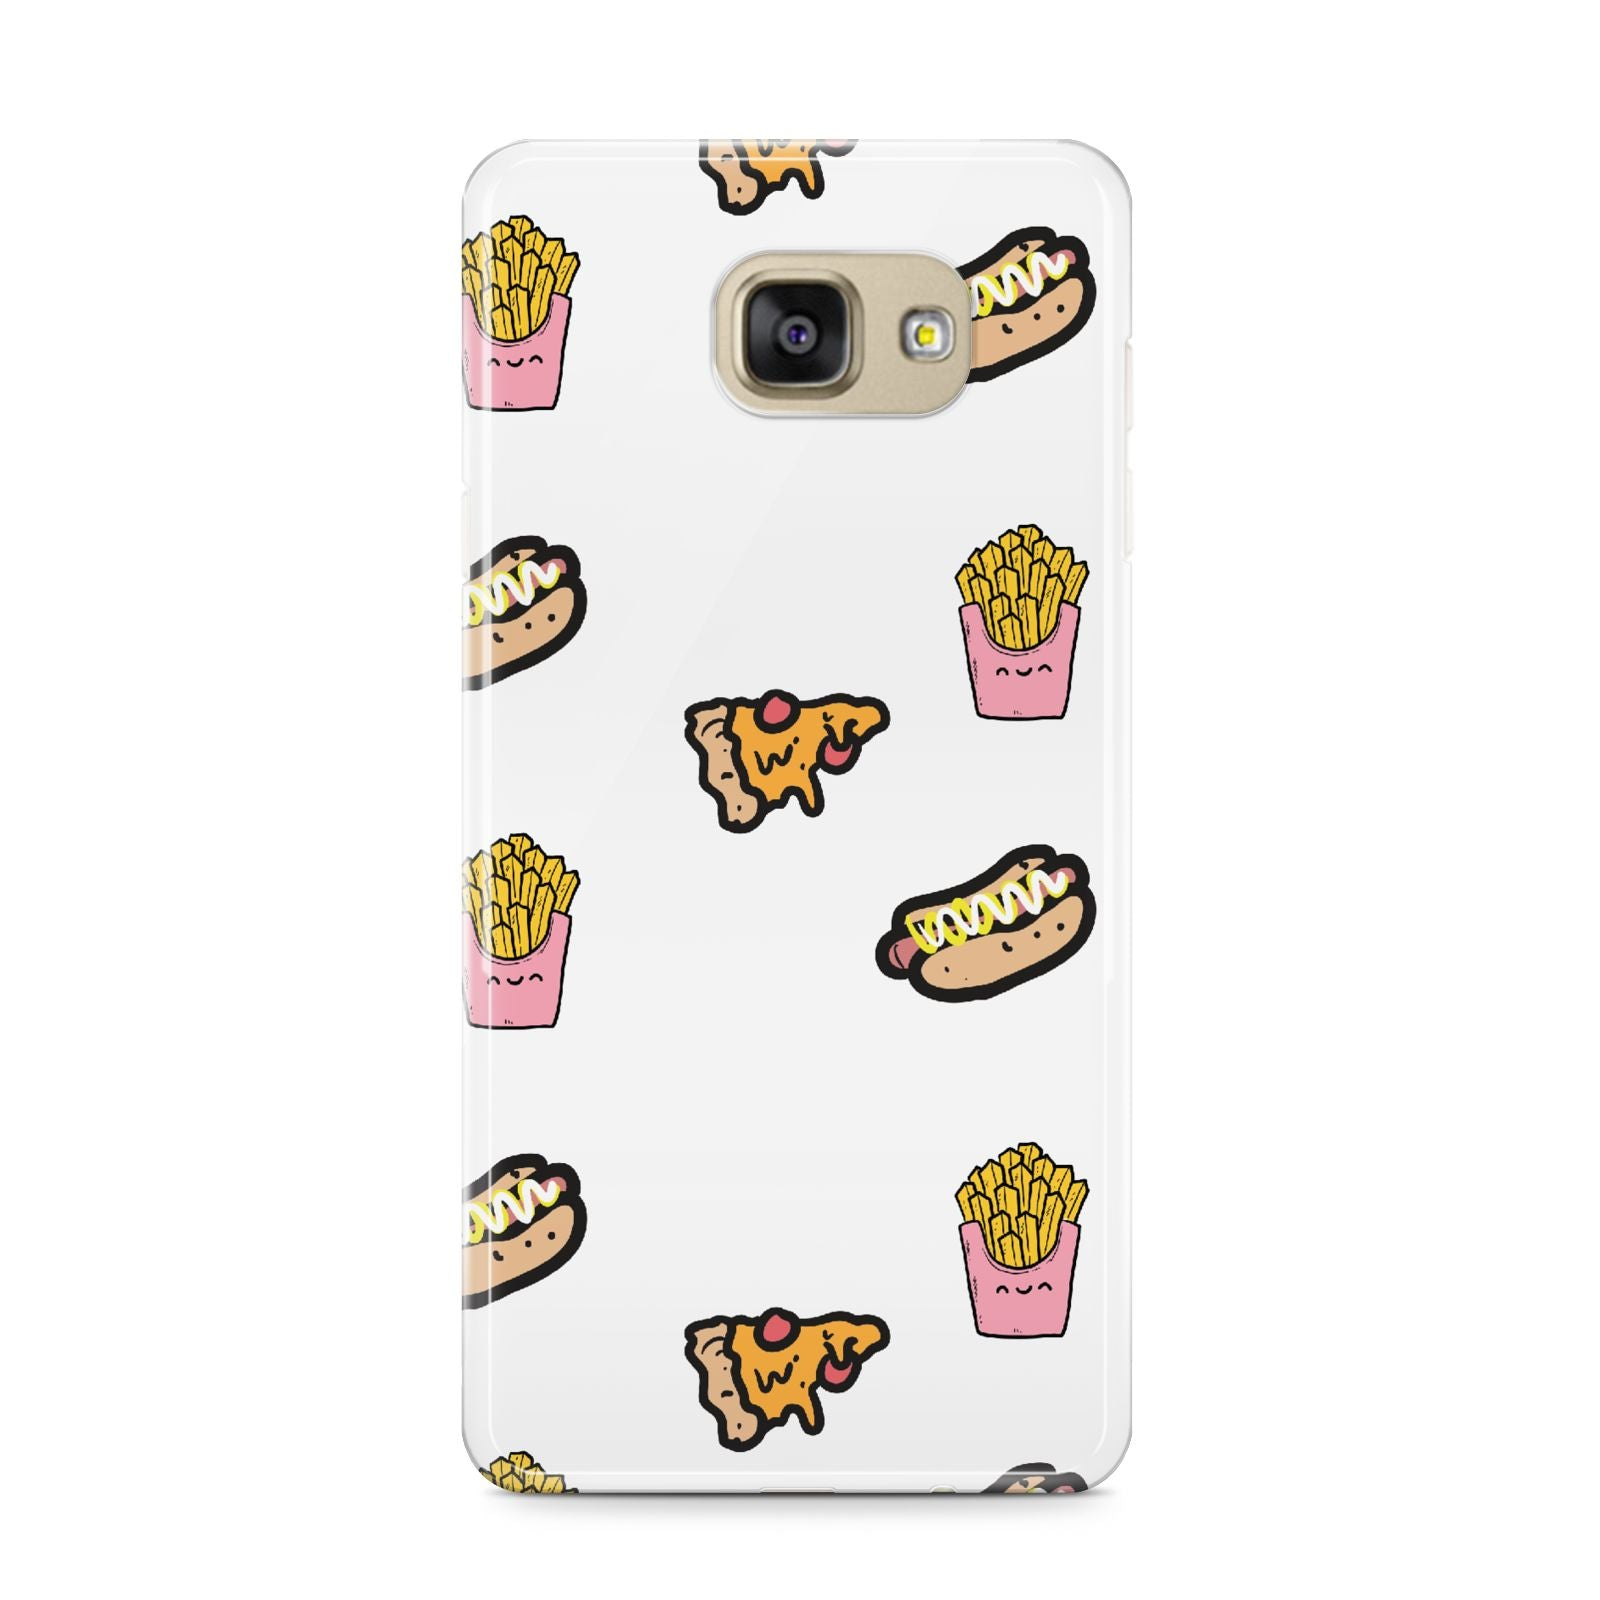 Fries Pizza Hot Dog Samsung Galaxy A9 2016 Case on gold phone